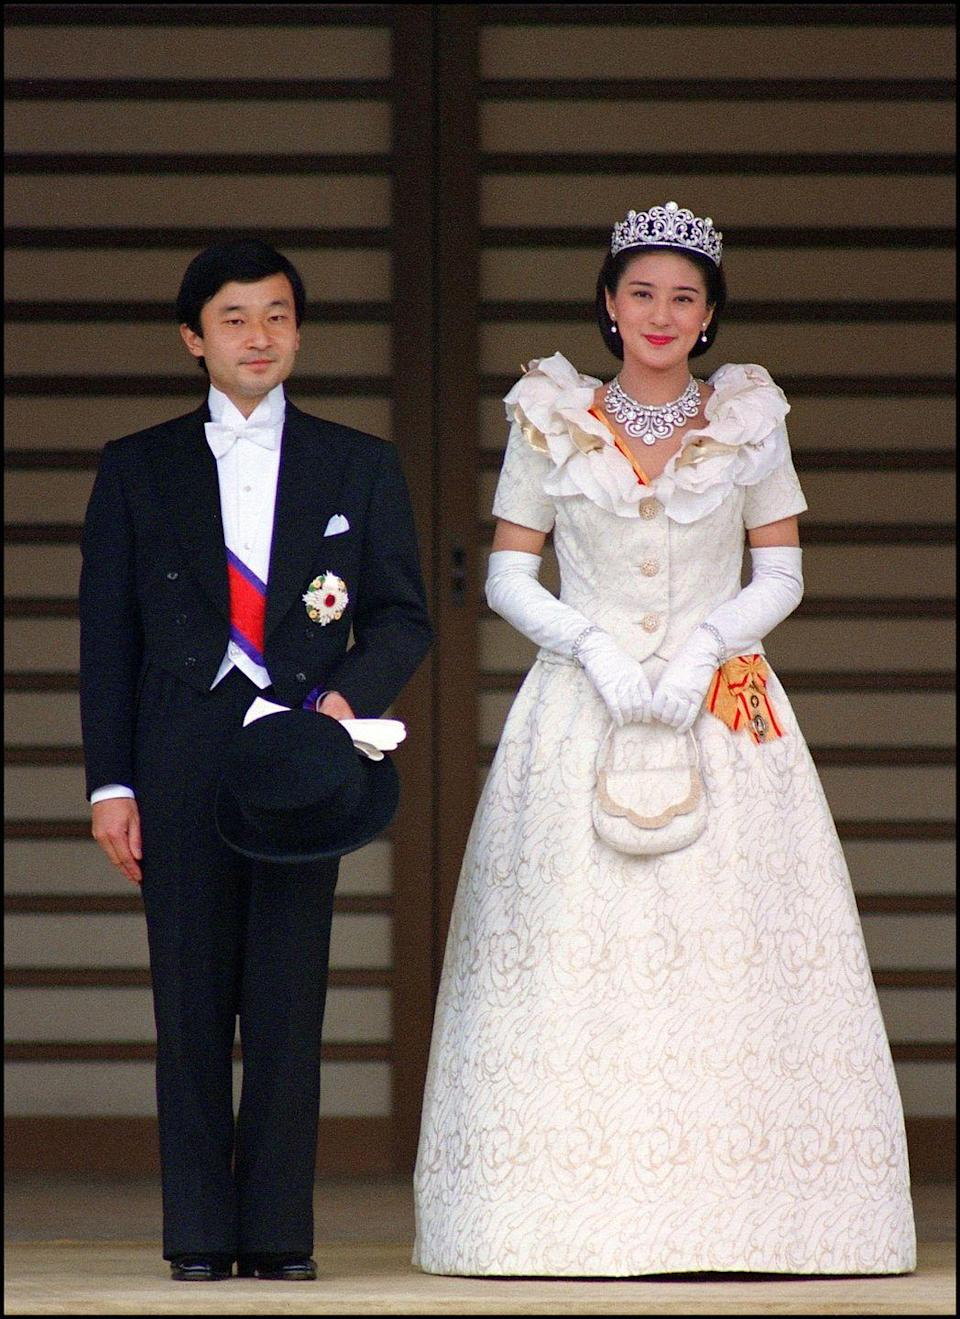 """<p>When the couple married in June 1993, Masako became only the <a href=""""https://www.bbc.com/news/world-asia-48118128"""" rel=""""nofollow noopener"""" target=""""_blank"""" data-ylk=""""slk:second commoner"""" class=""""link rapid-noclick-resp"""">second commoner</a> in Japanese history to marry the first in line to the throne (the first being her mother-in-law Michiko). </p>"""